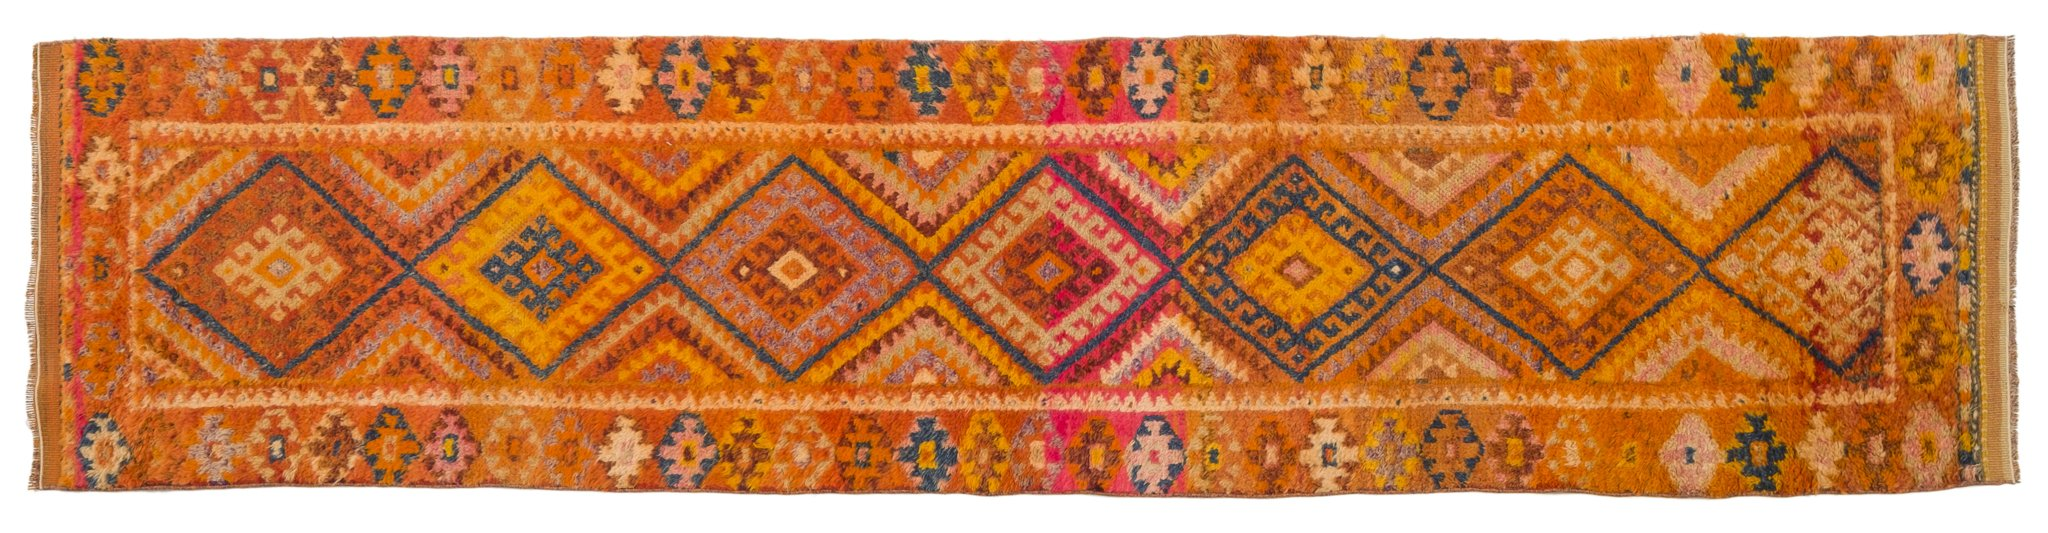 Vintage Turkish Runner Rug Midhad